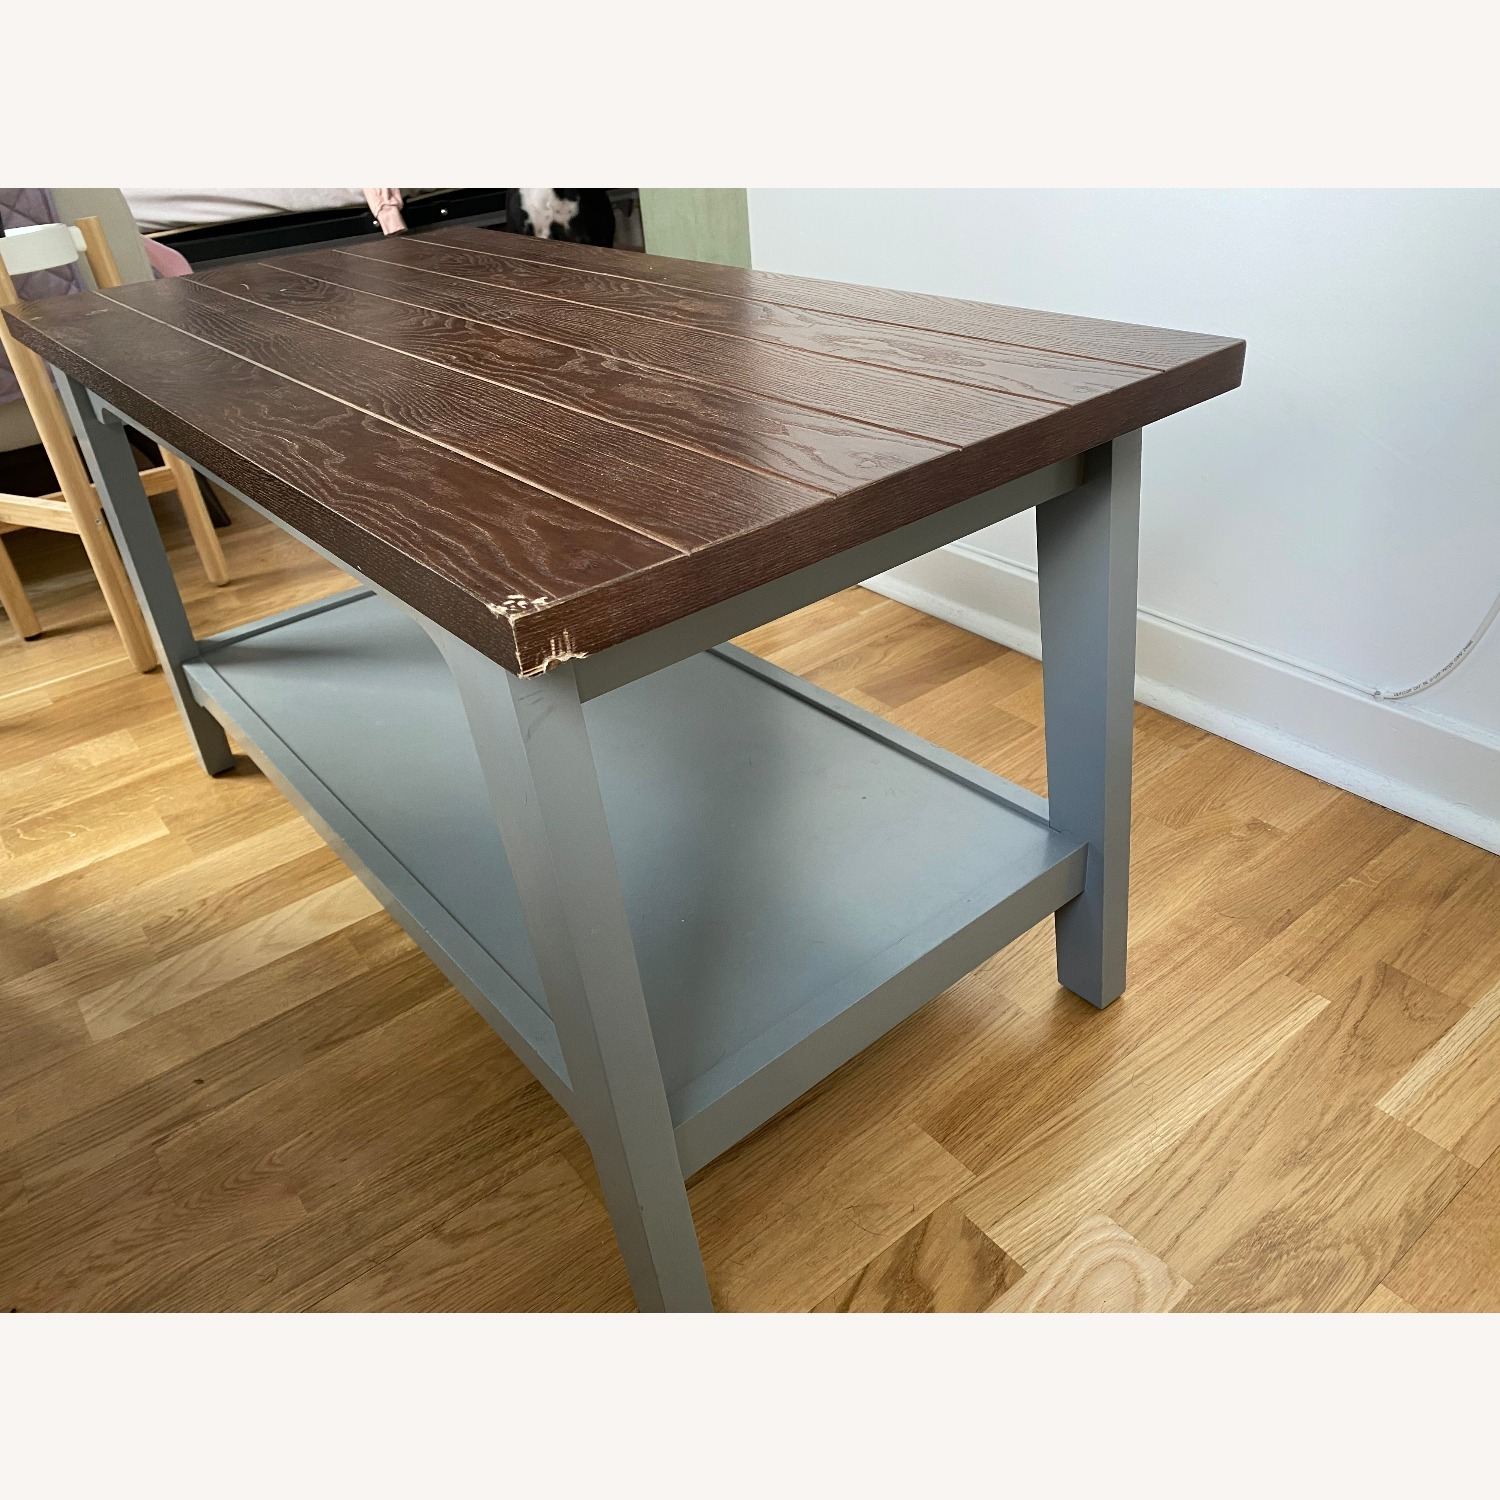 Chatham House Newport Coffee Table in Grey - image-2